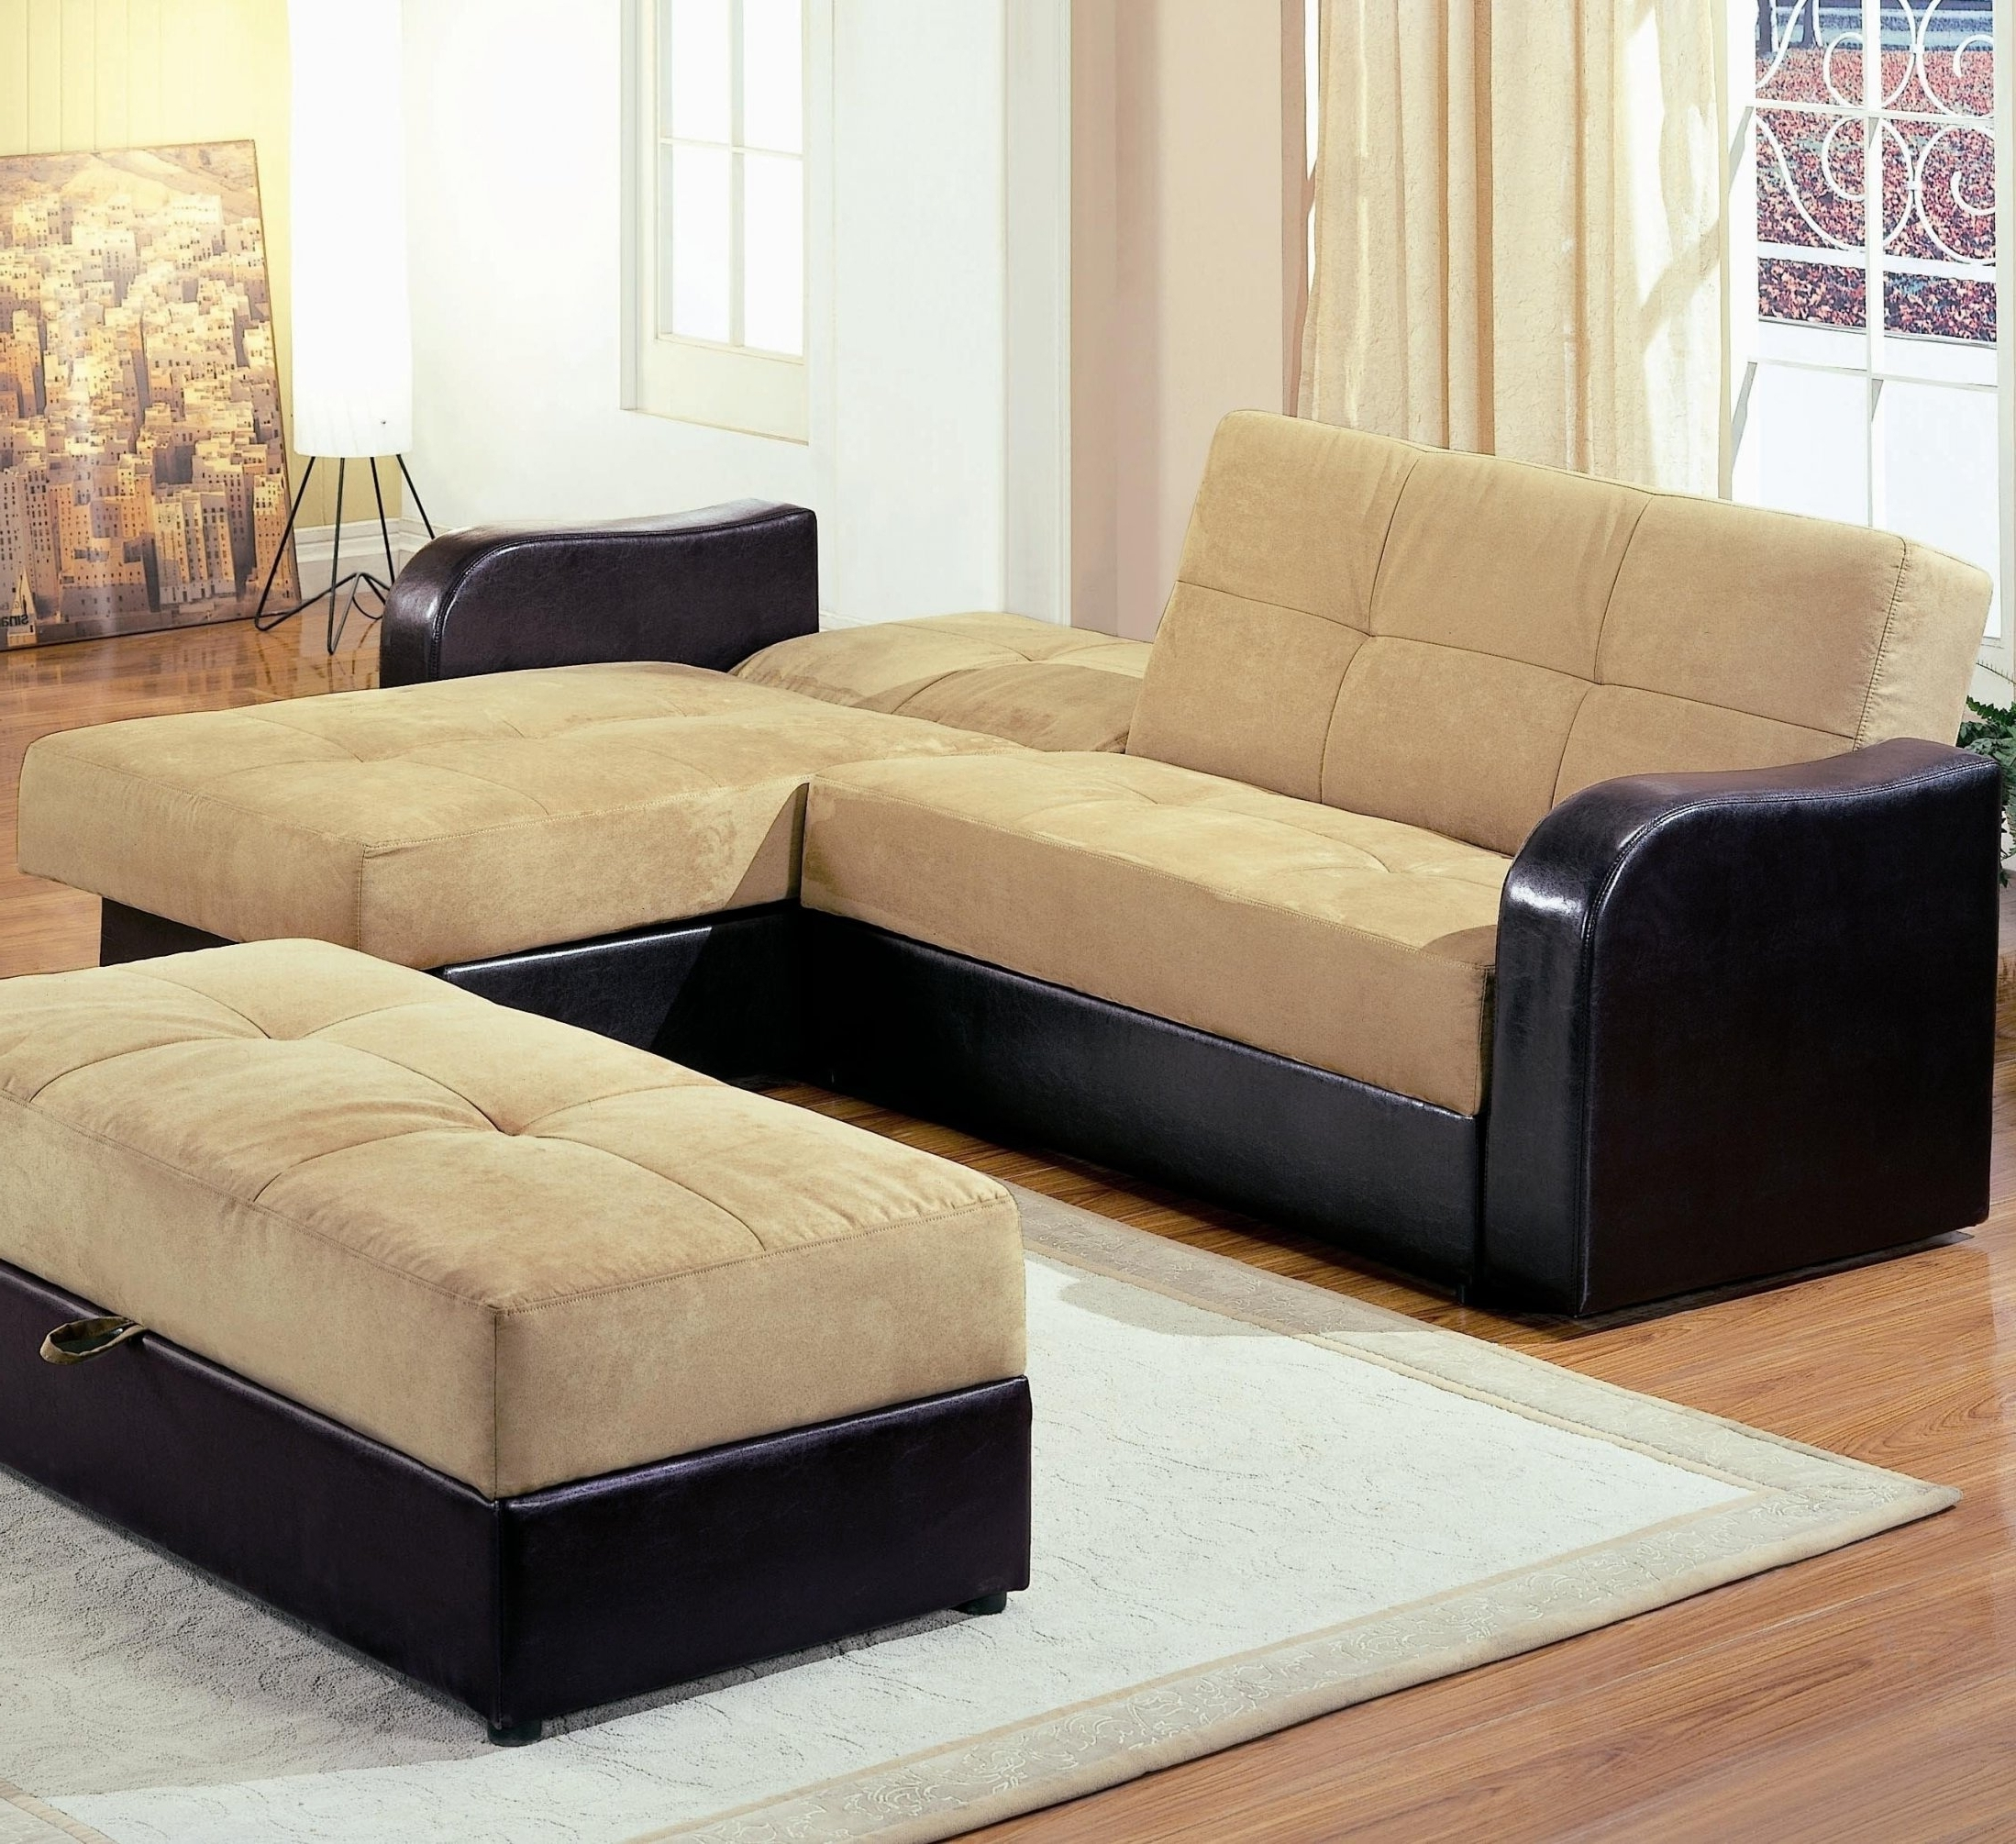 Sectional Sleeper Sofa With Ottoman With Regard To Well Liked Sectional Sleeper Sofas With Ottoman (View 13 of 20)